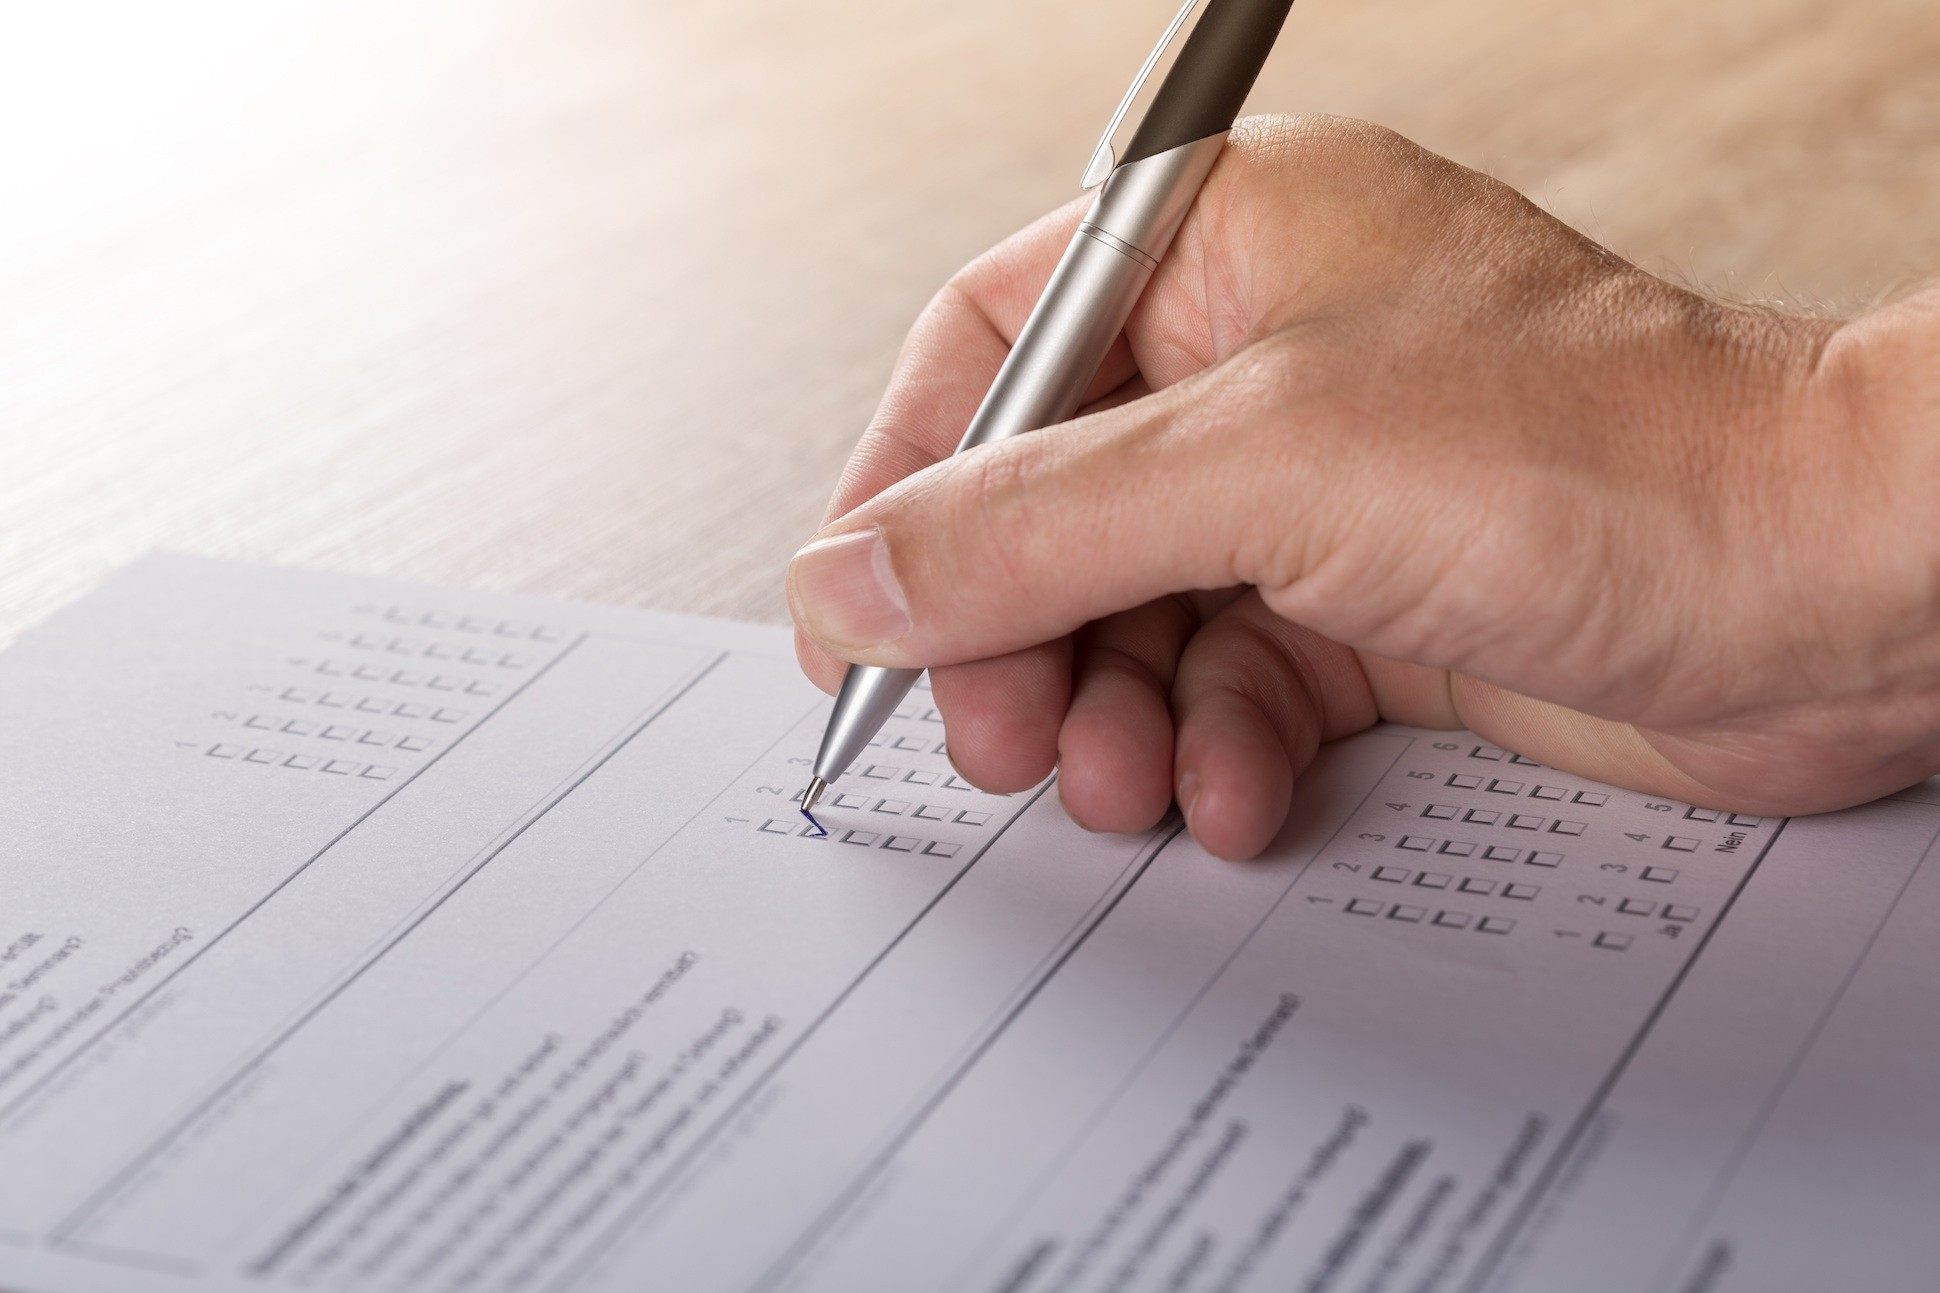 Image of hand checking off boxes on a standardized test sheet.